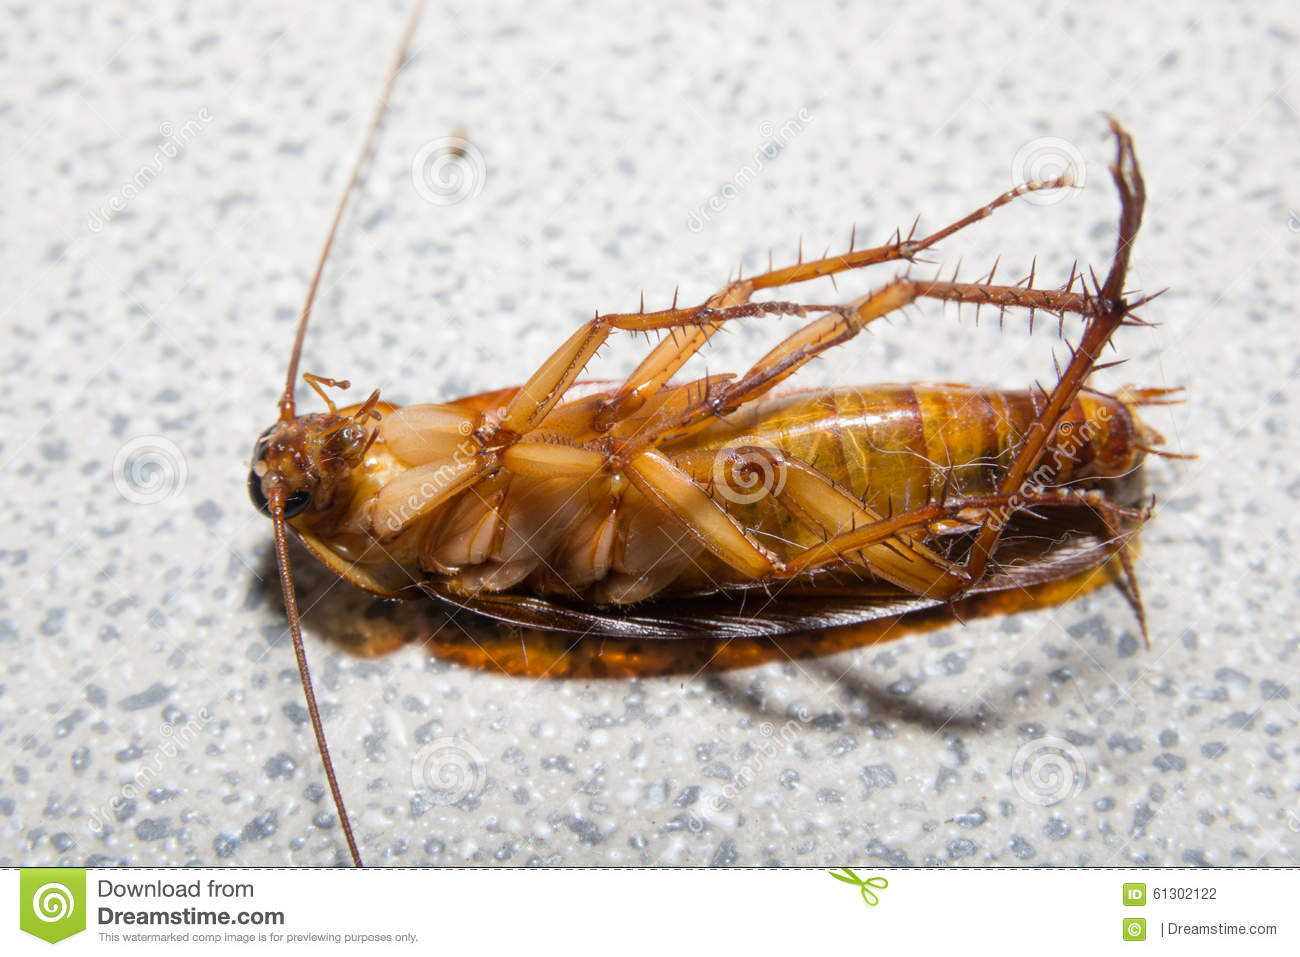 Dreams of cockroaches in hair